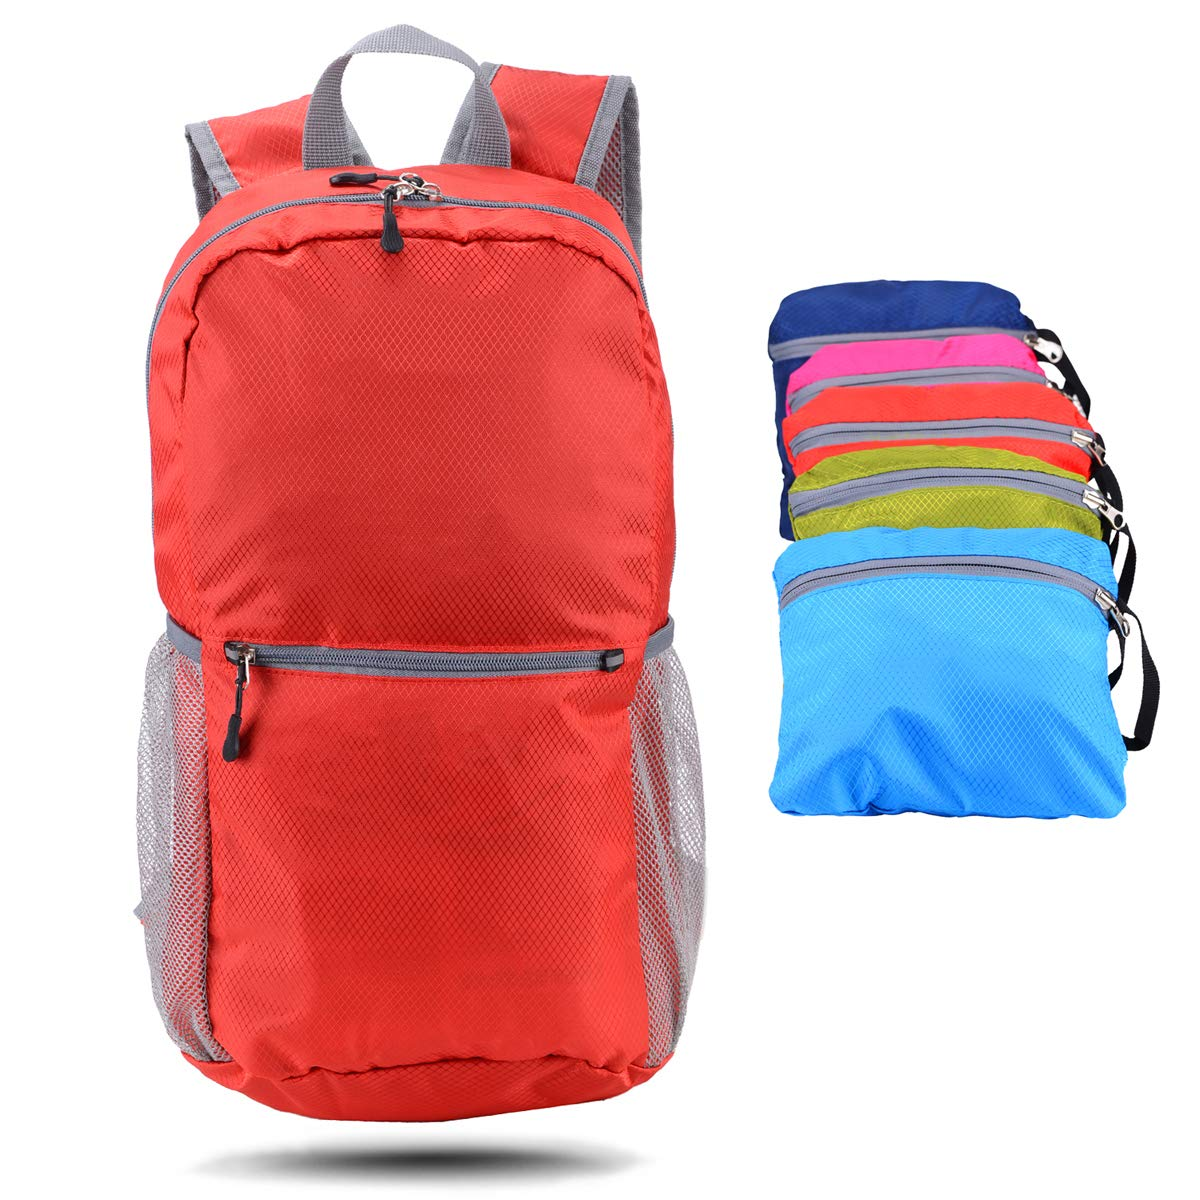 Lightweight Packable Backpack Water Resistant,Small Backpack Handy Foldable Camping Outdoor Backpack Little Bag Cali America Hiking Daypack 20L Red